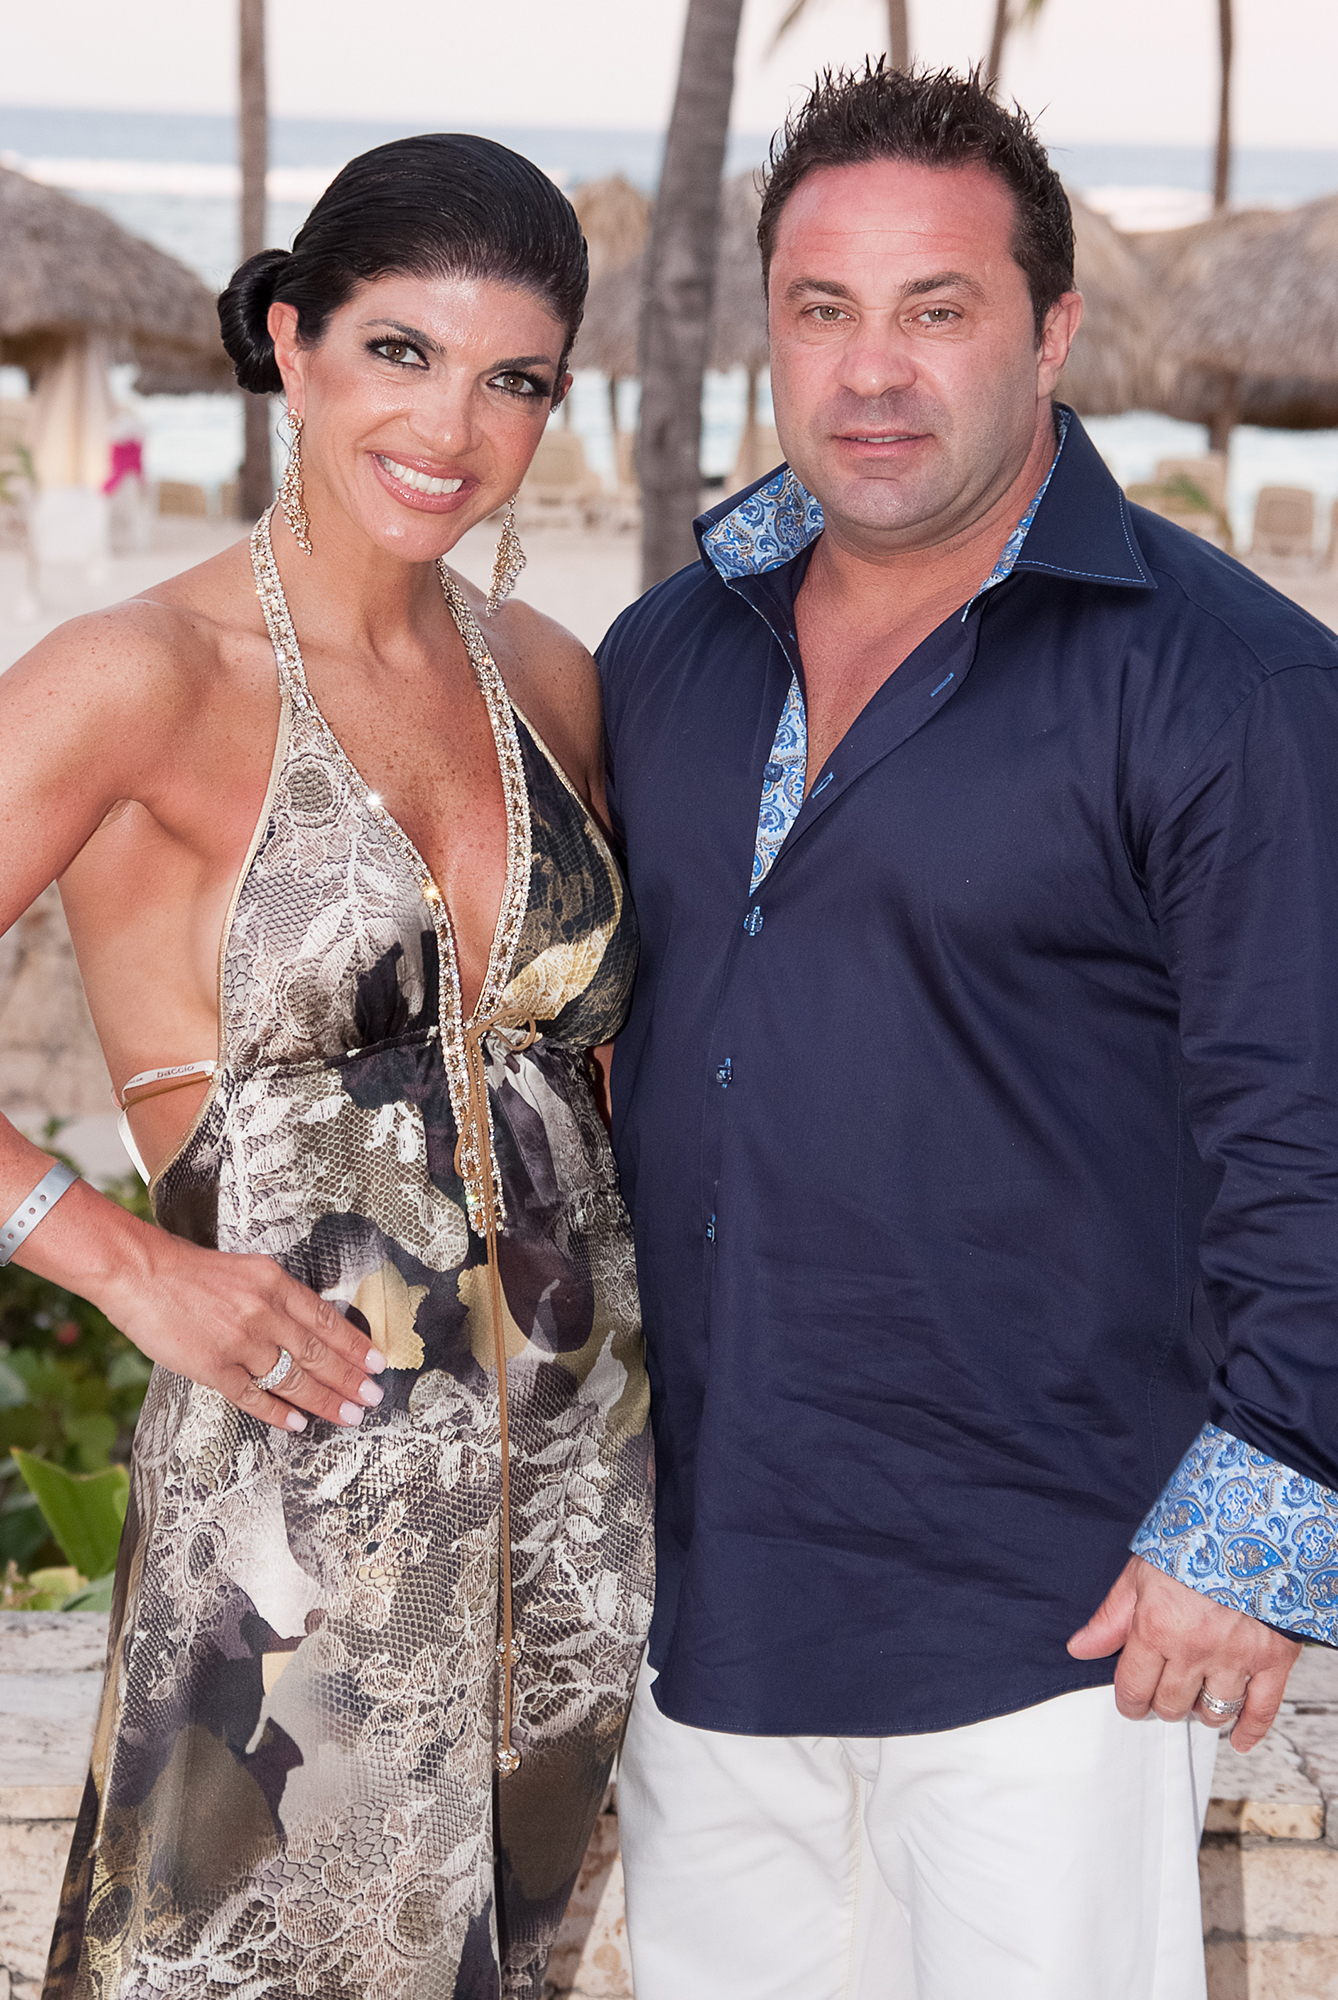 Melissa Gorga: 'I Don't Think' Teresa Giudice Will Move to Italy If Joe Giudice Is Deported